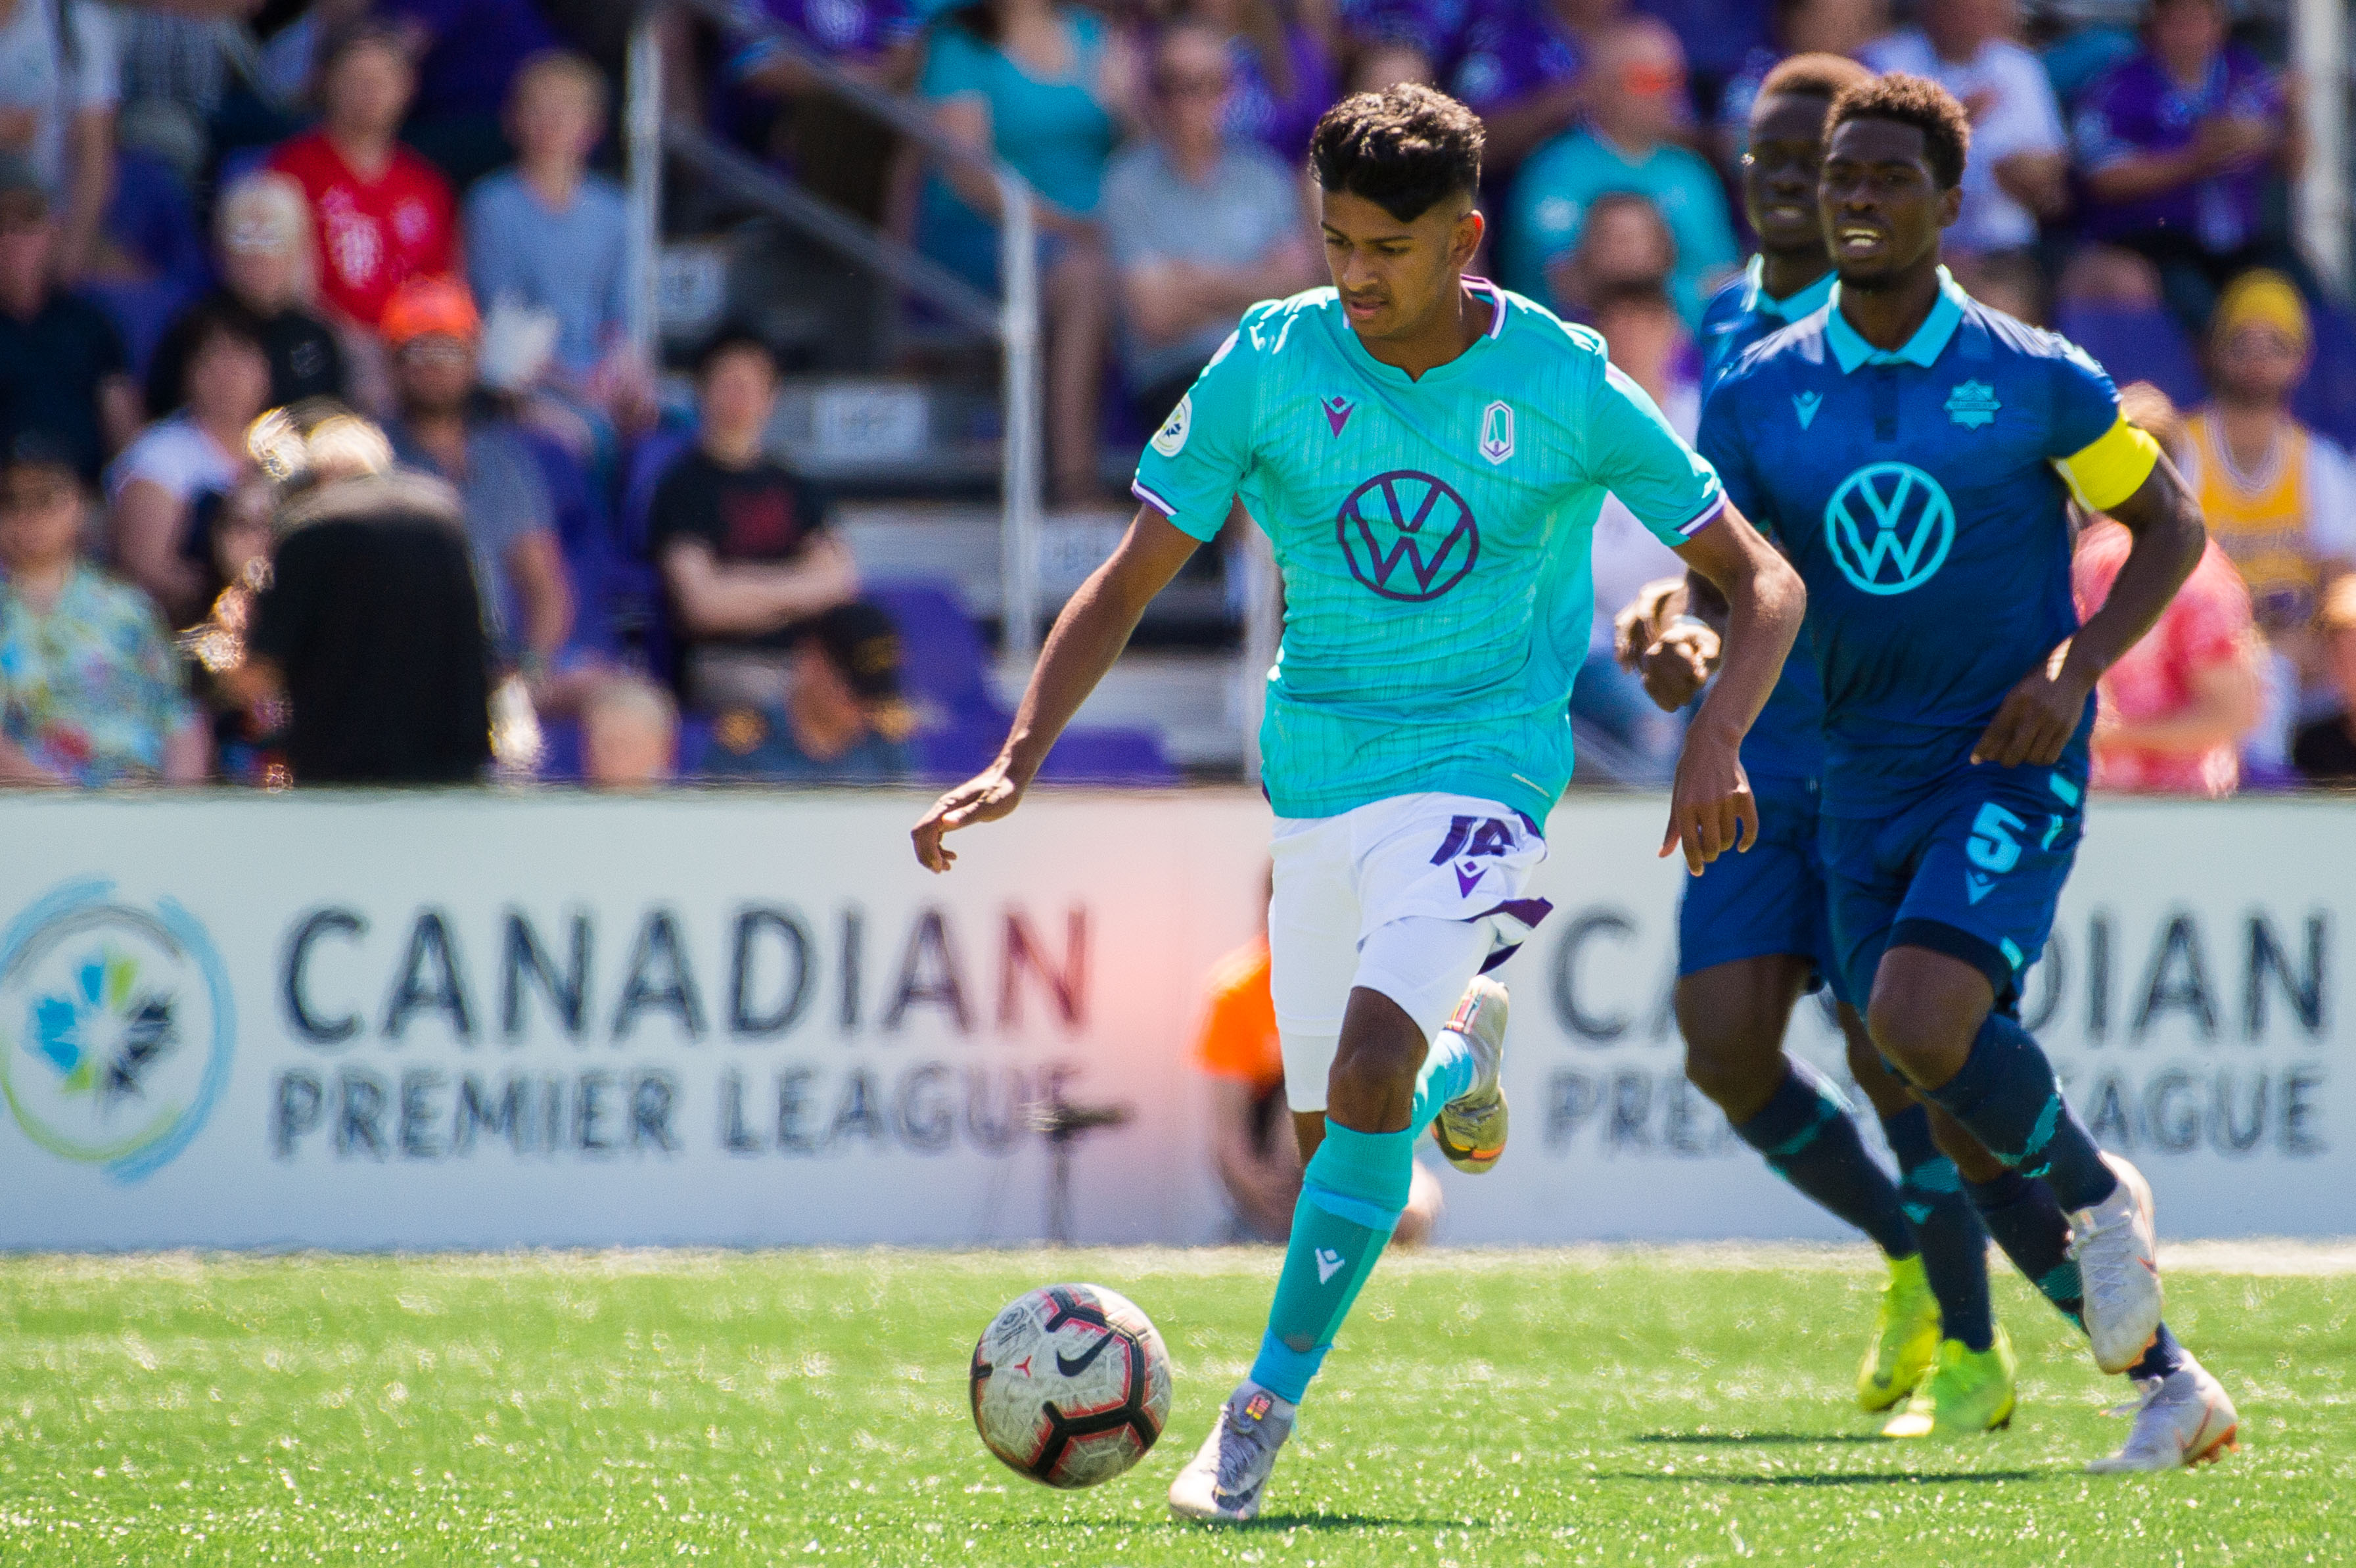 Pacific FC's Zach Verhoven in action vs. HFX Wanderers FC. (Photo: Pacific FC).